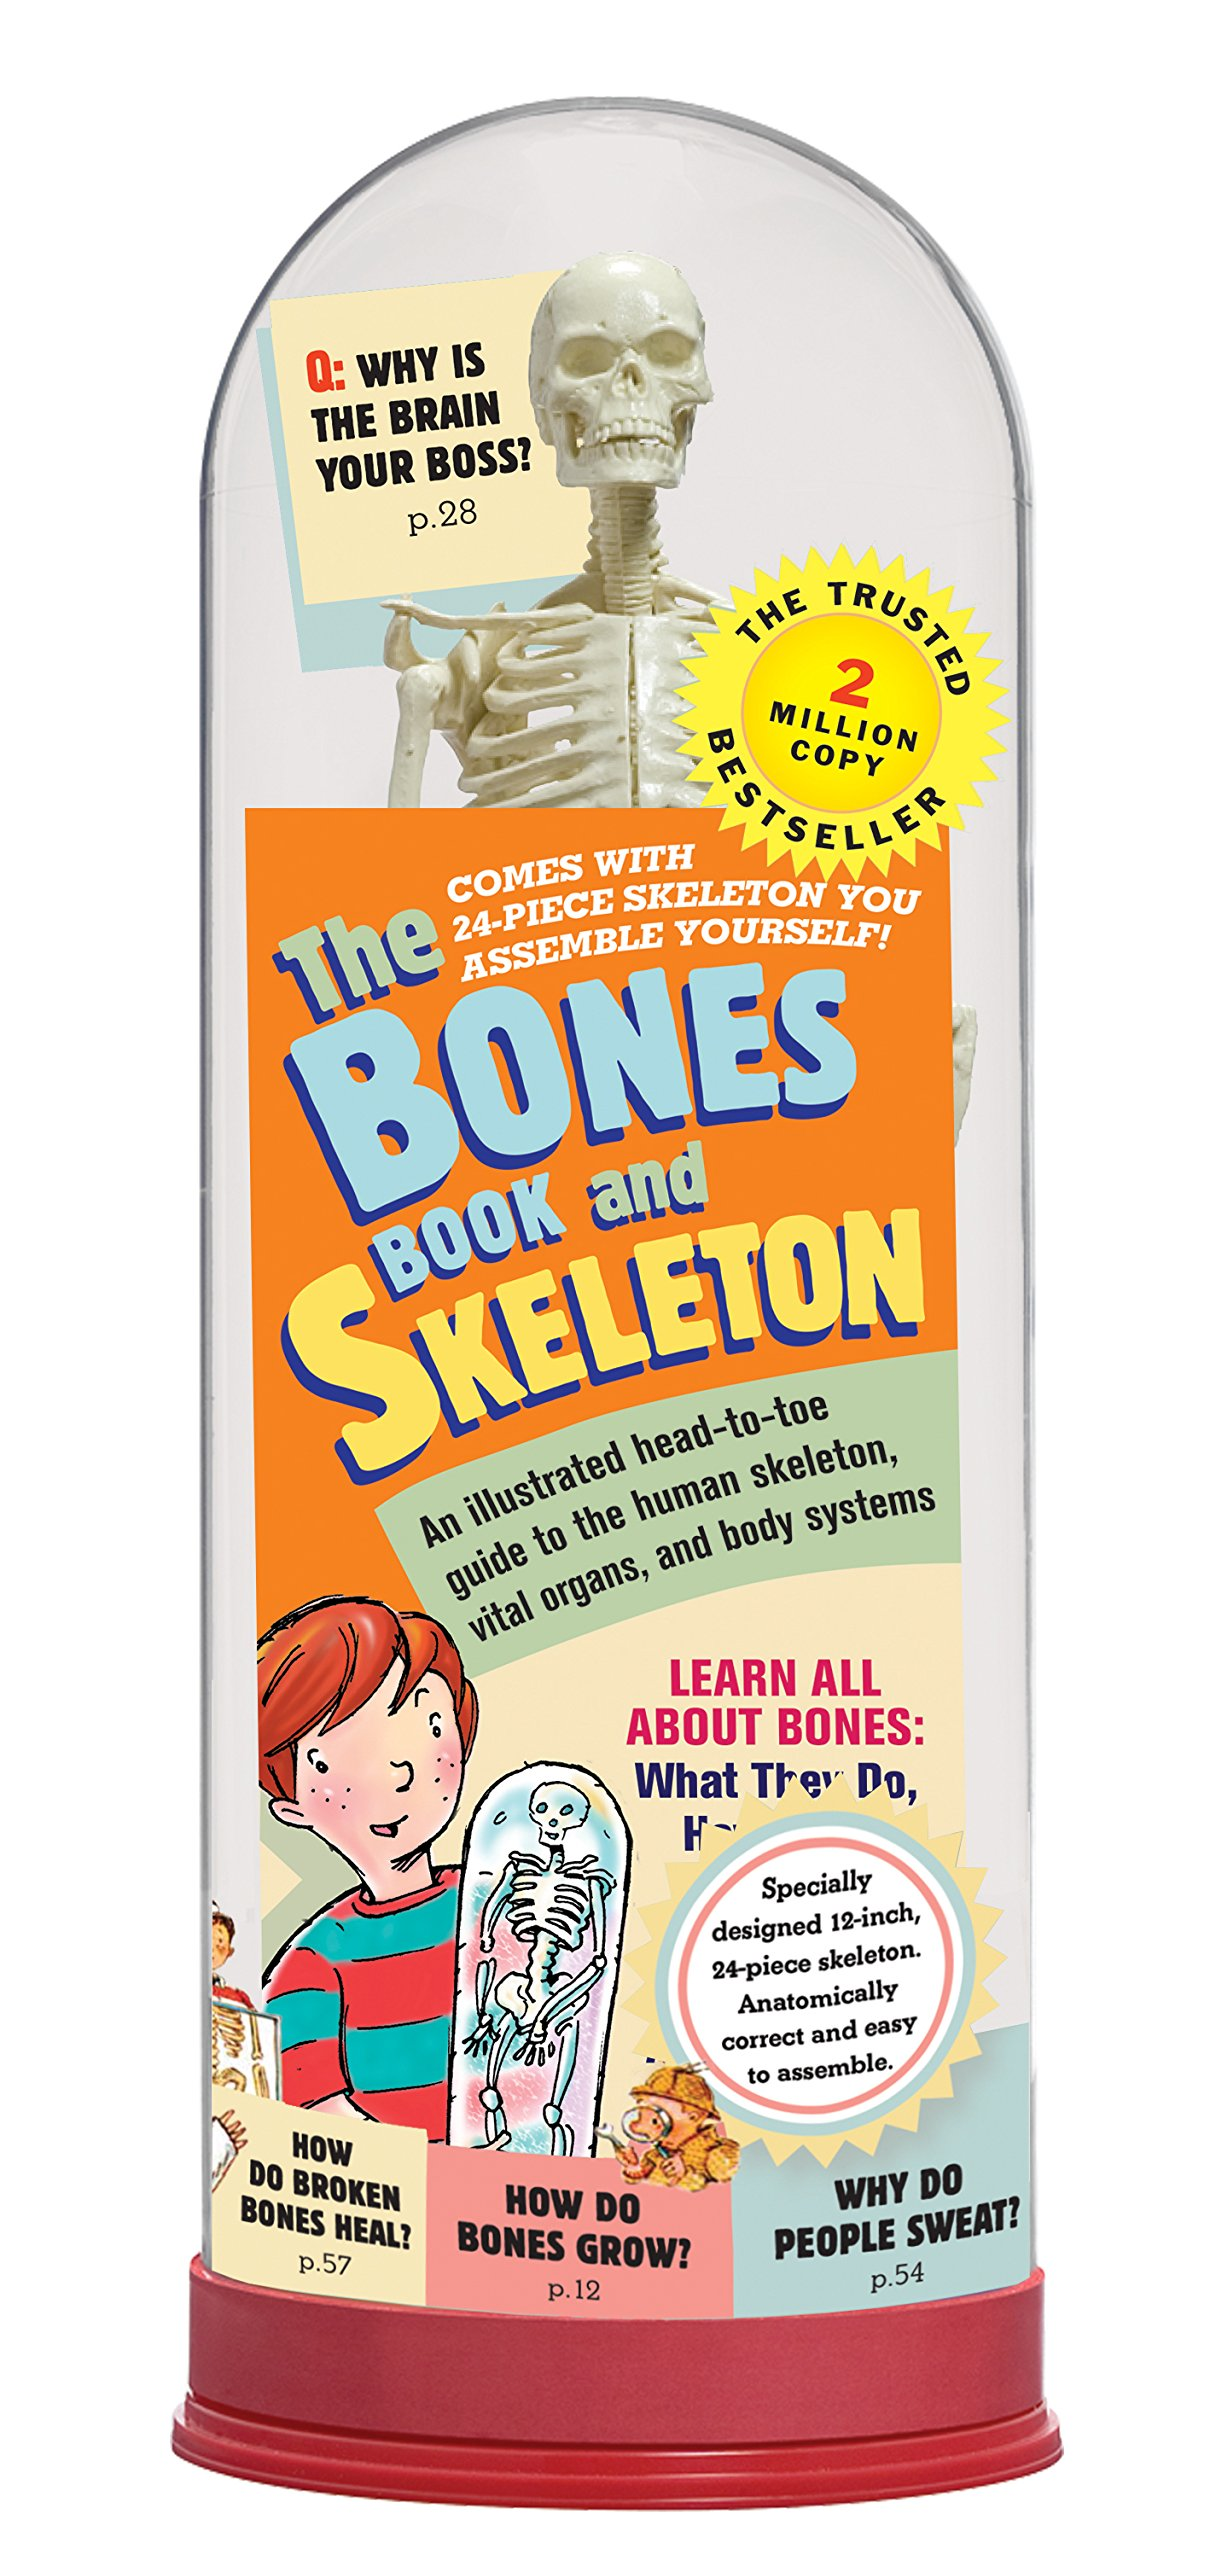 The Bones Book and Skeleton  Stephen Cumbaa  9780761142188  Amazon ... 207d0c6b8c2